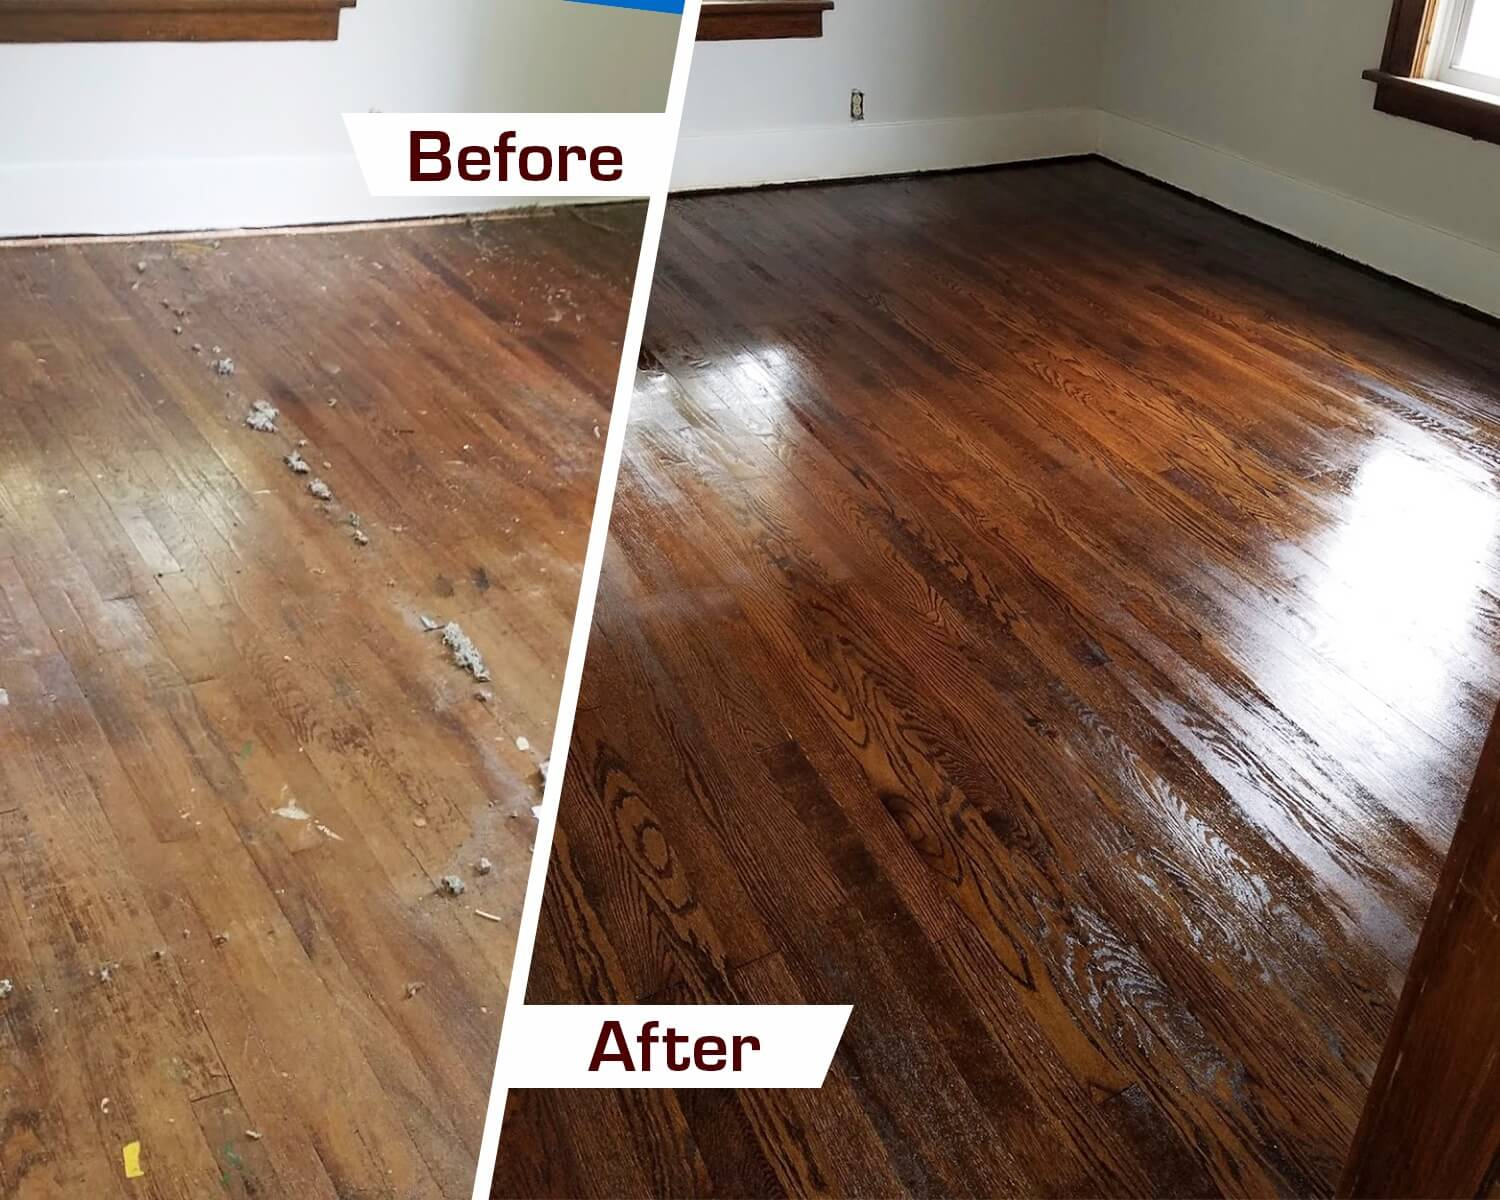 Hardwood Floor Refinishing in Murfreesboro, TN